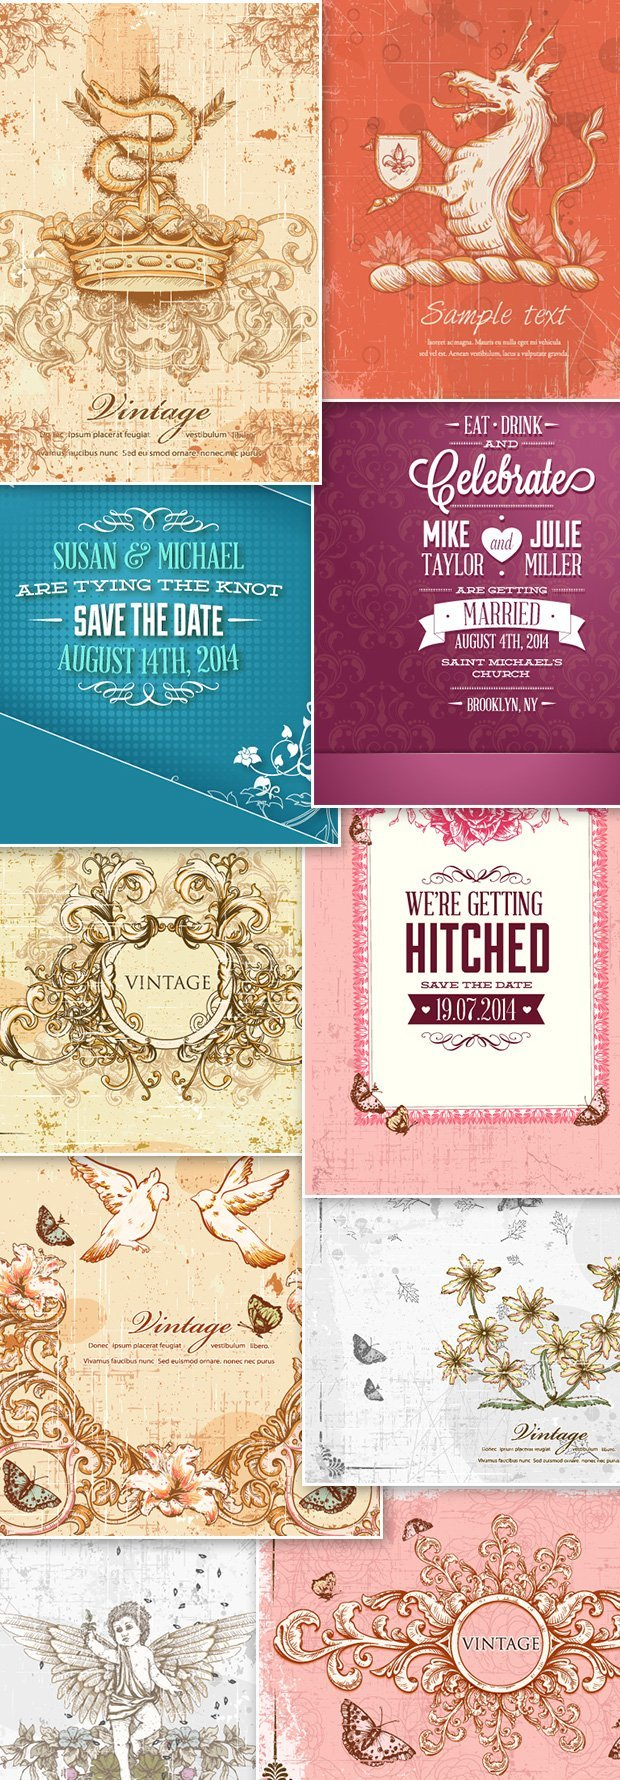 10-free-vintage-wedding-vector-illustrations-preview